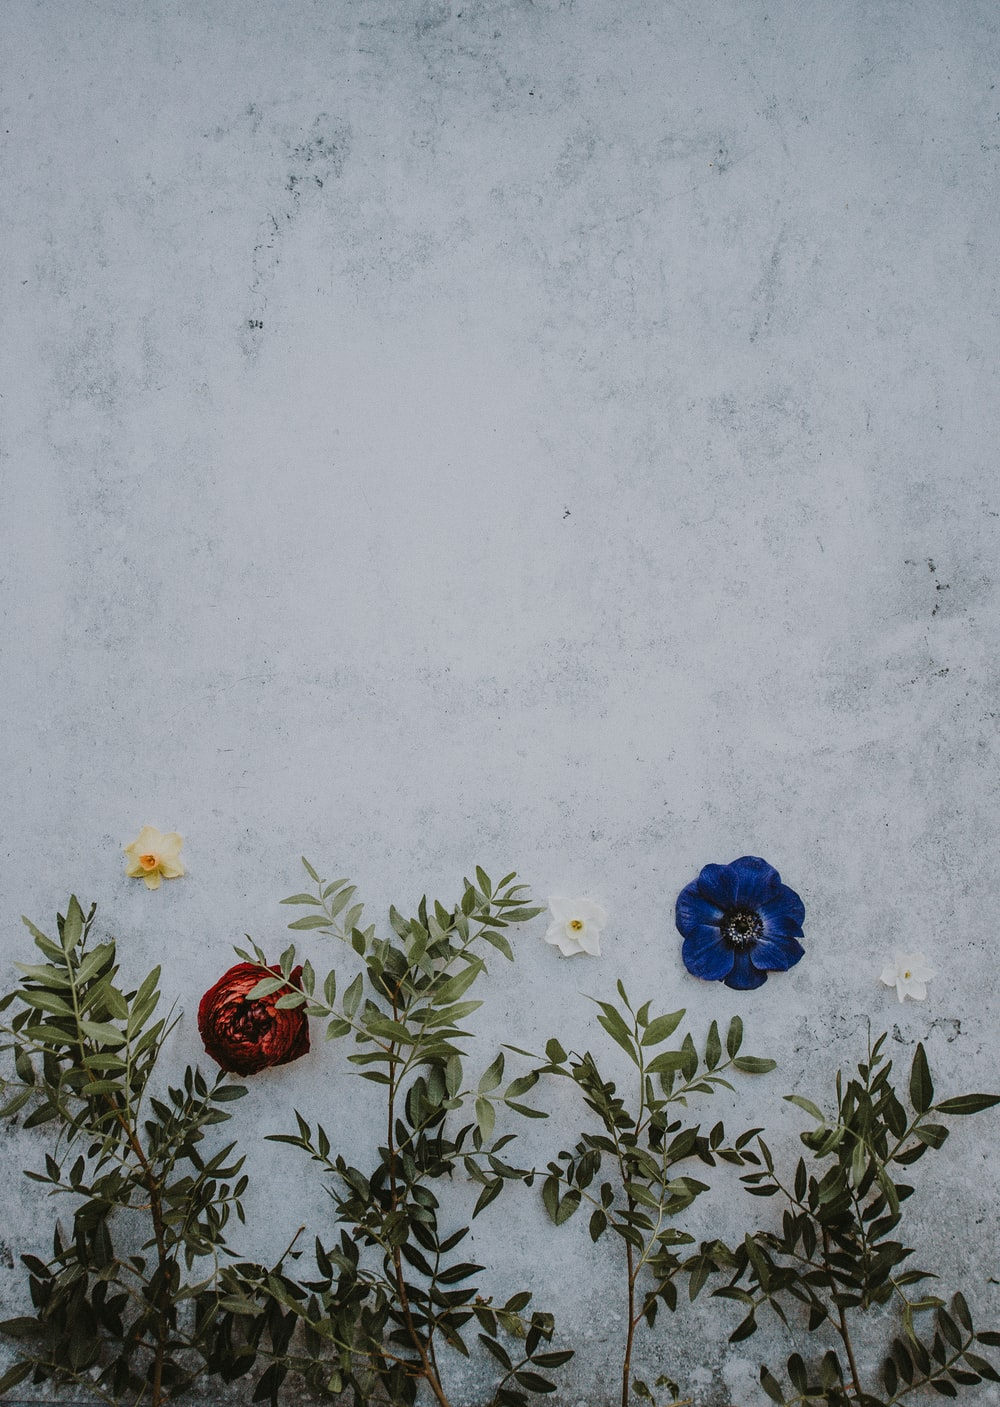 closeup photo of blue, white, and red petaled flowers